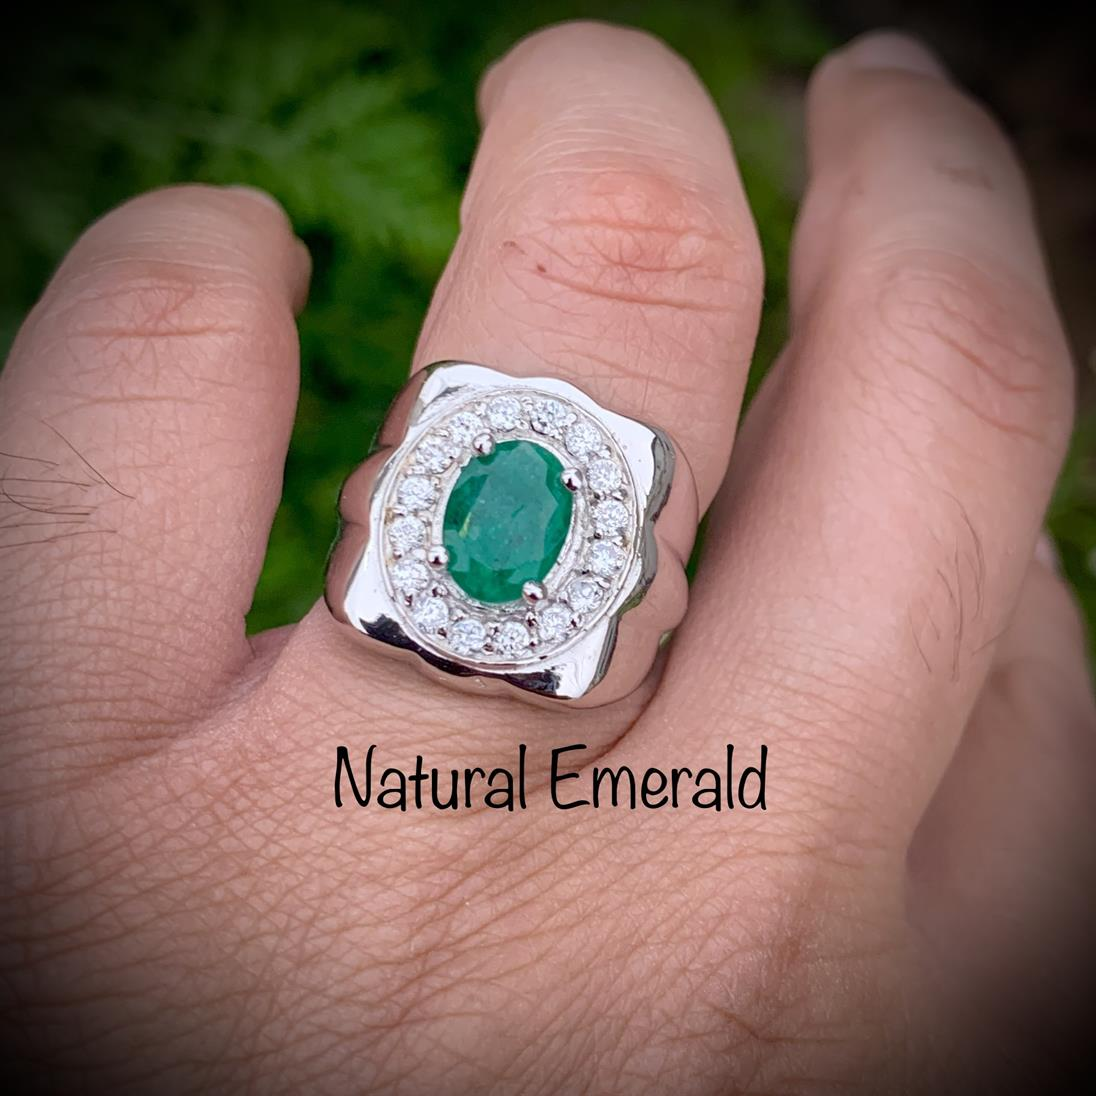 Natural Emerald Ring 102 1 natural gemstones pakistan + 925 silver jewelry online